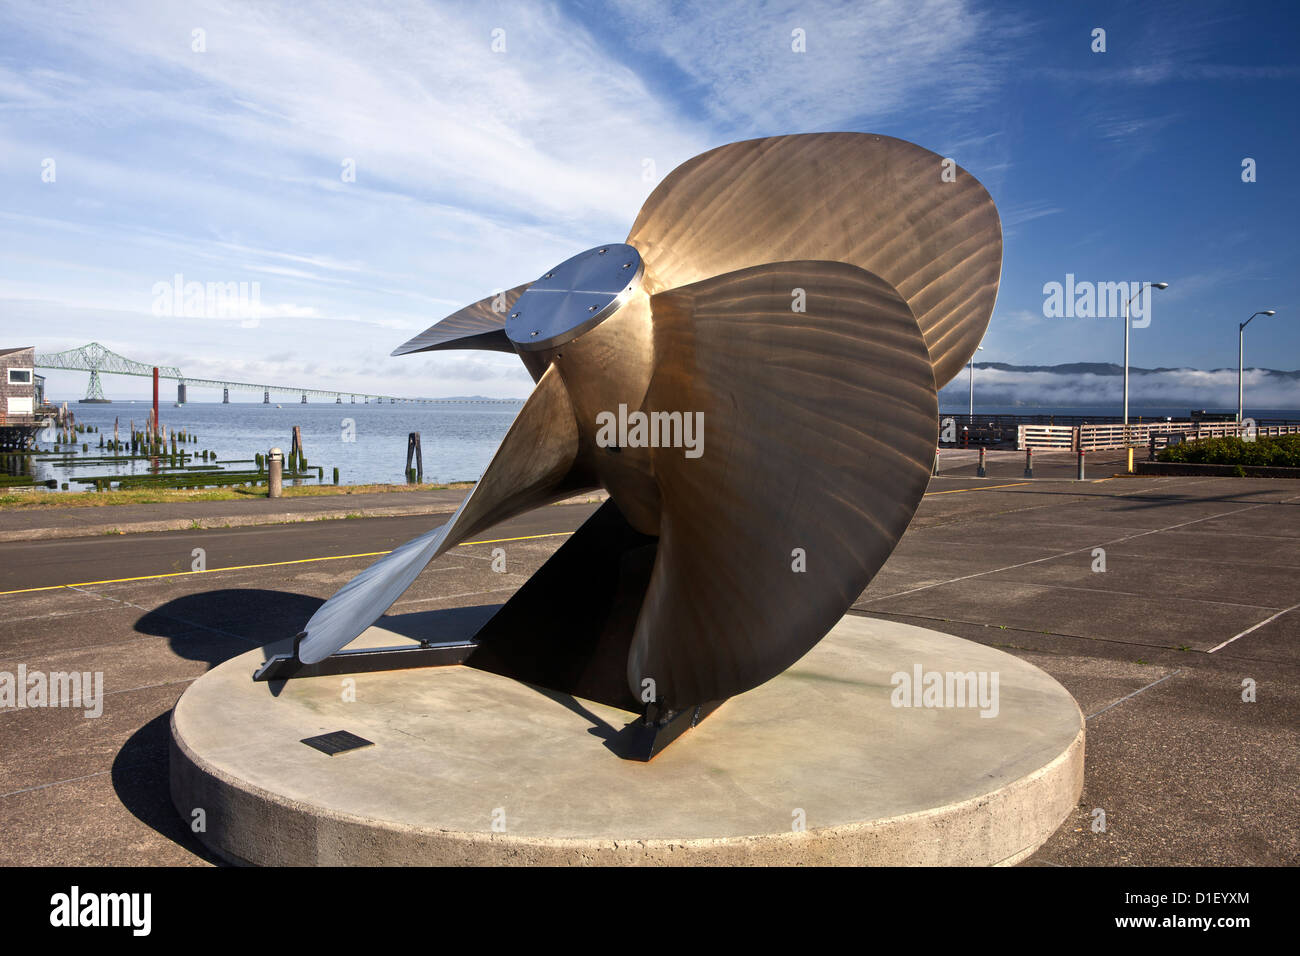 OR00930-00...OREGON - Large prop outside the Columbia River Maritime Museum in Astoria. - Stock Image